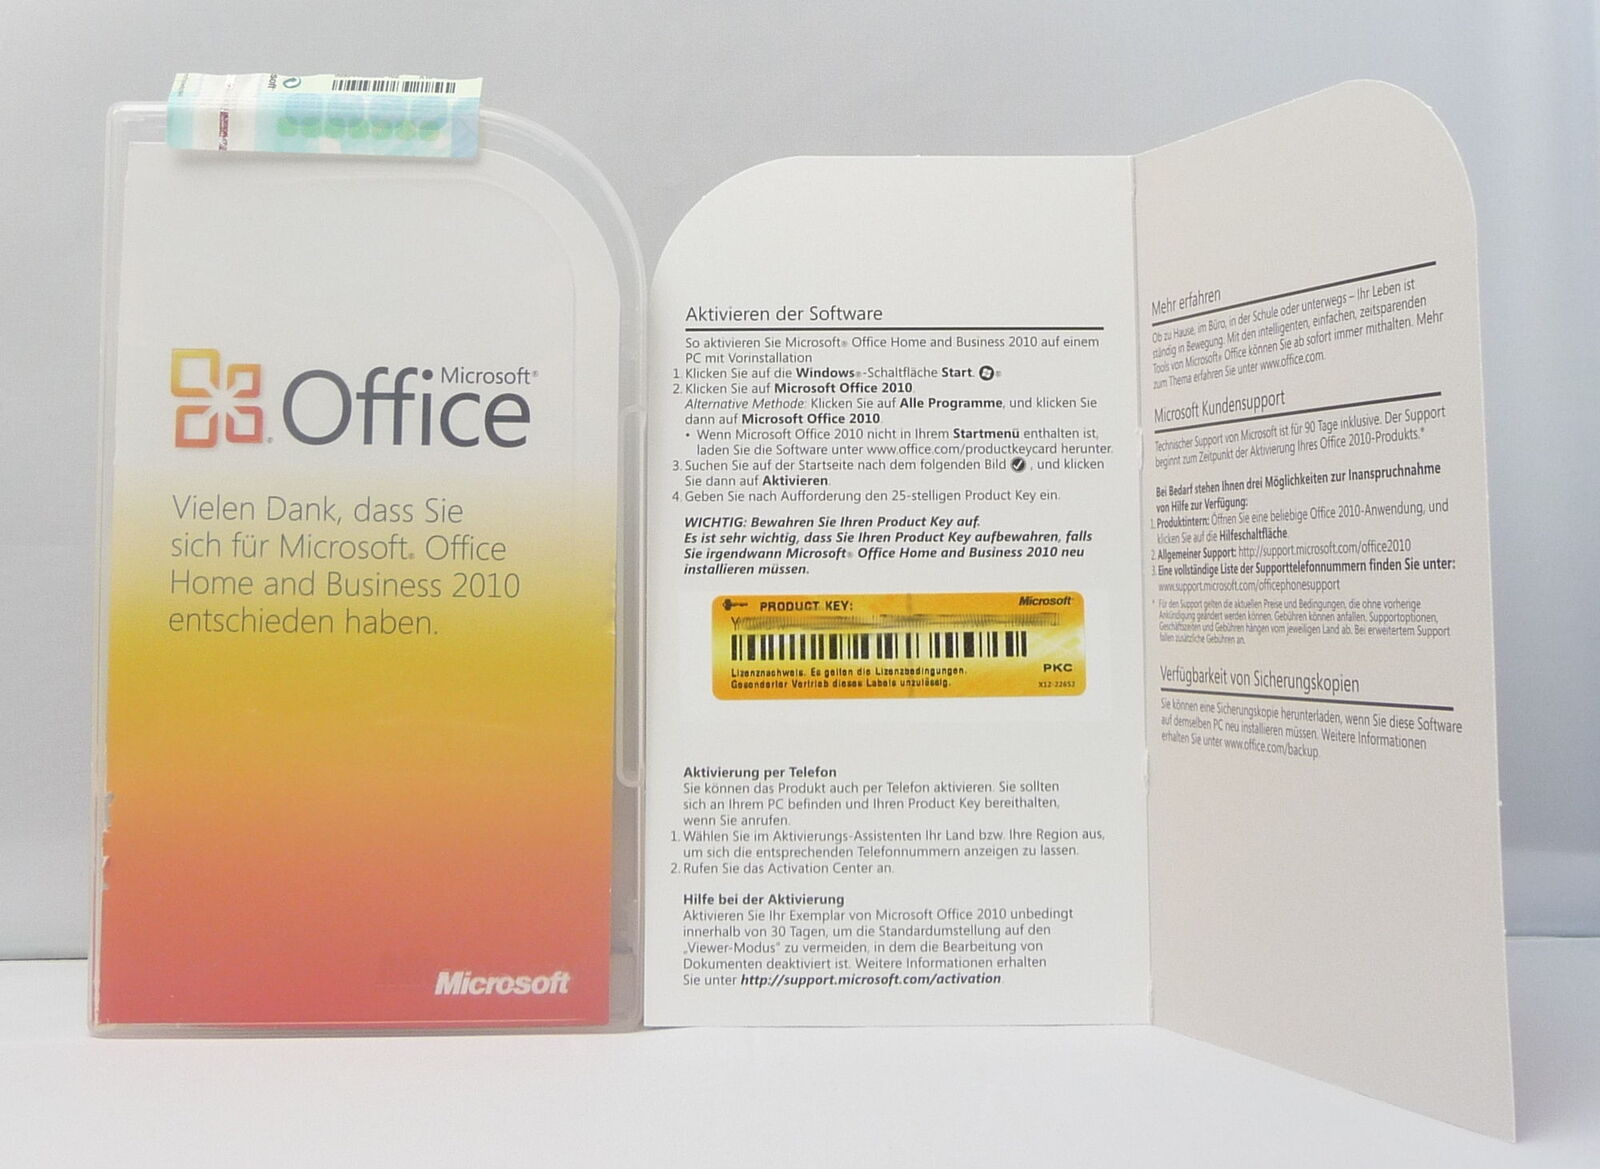 Microsoft Office 2010 Home and Business - PKC - Deutsch - mit Word,Excel,Outlook